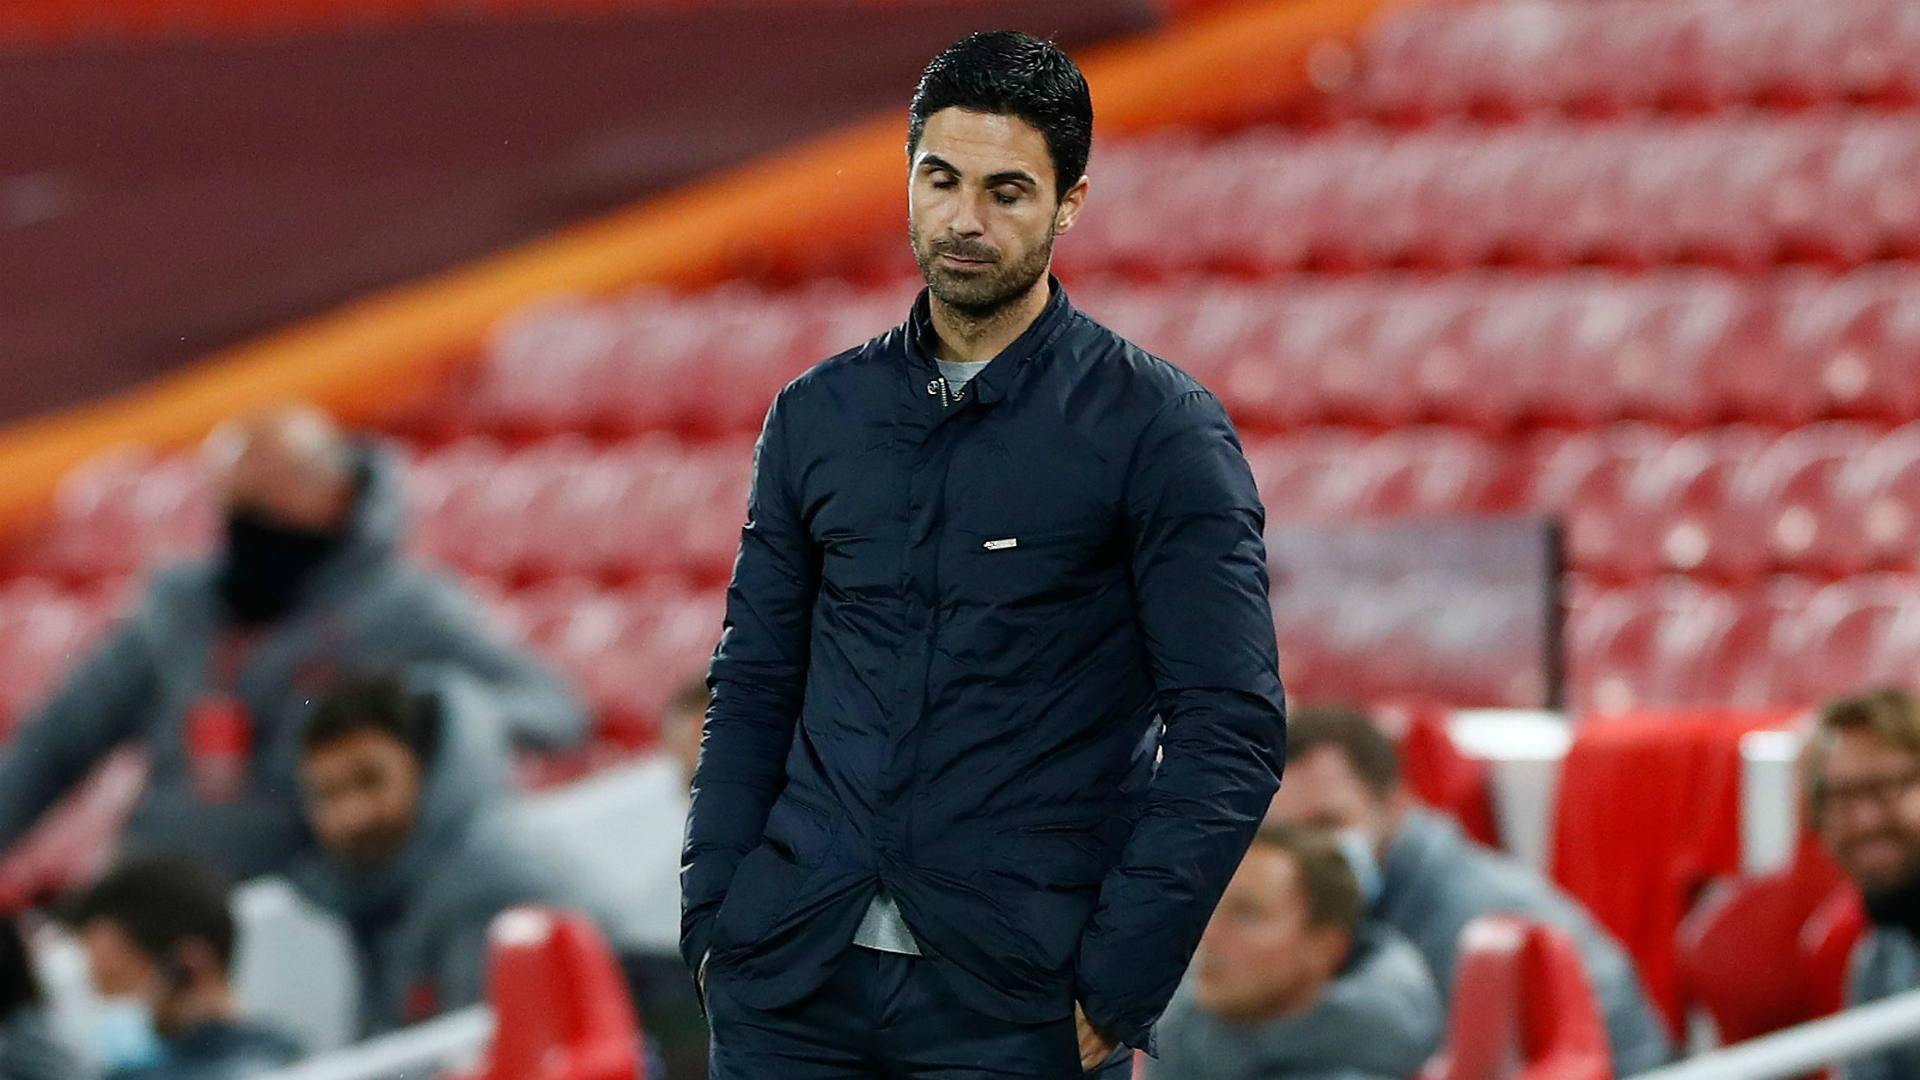 Liverpool have set the standard Arsenal have to reach - Arteta